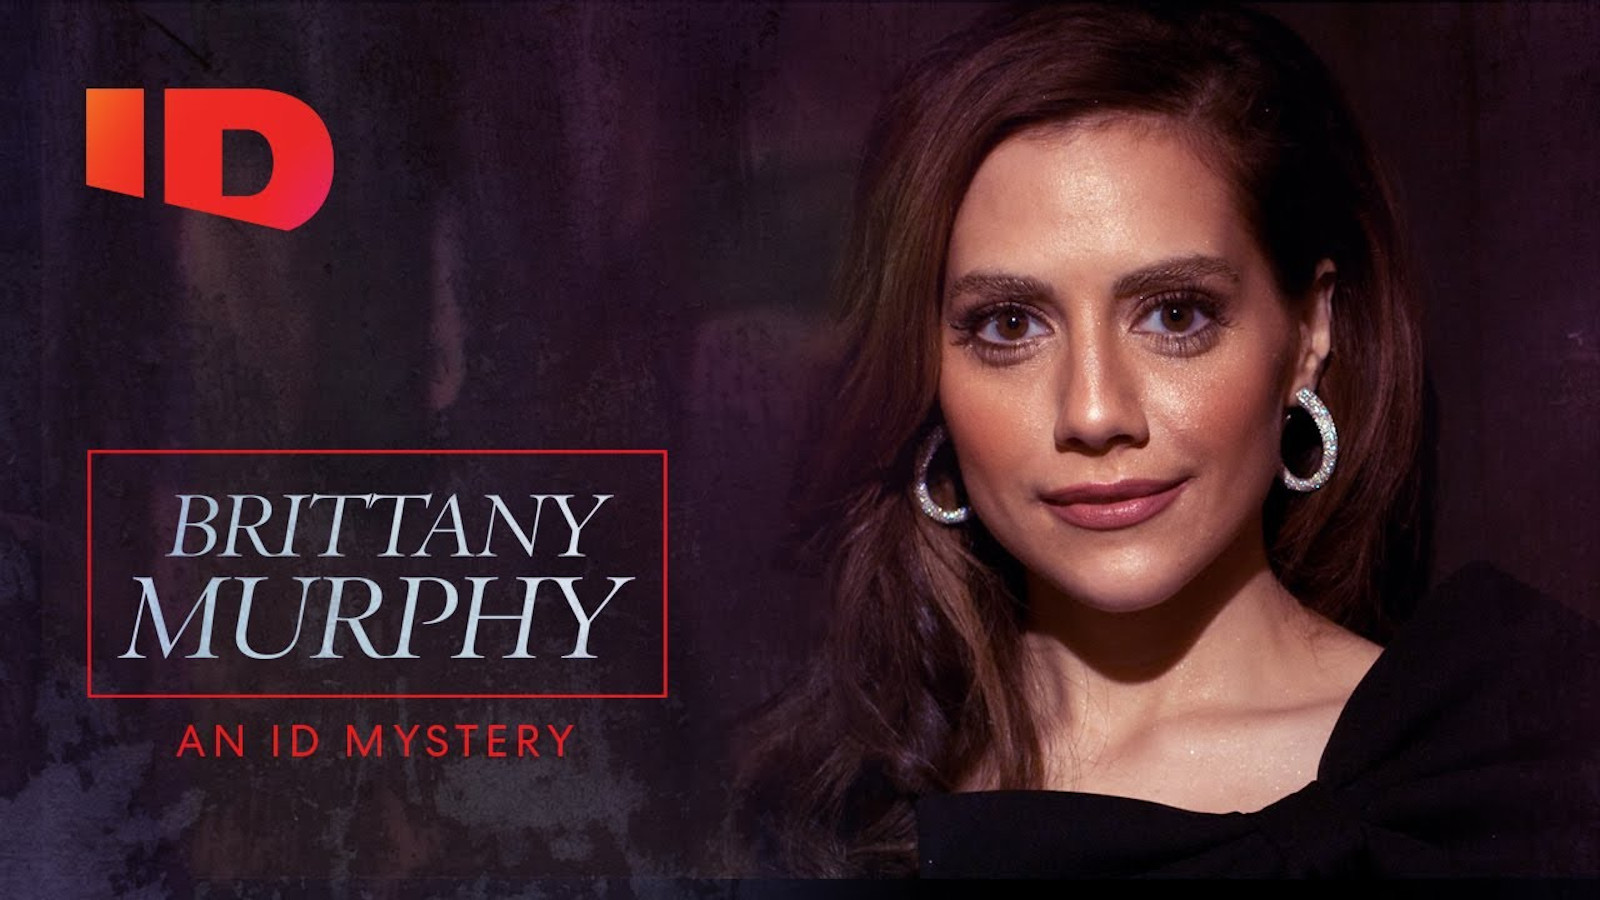 The special discovery on TV about the death of actress Brittany Murphy's